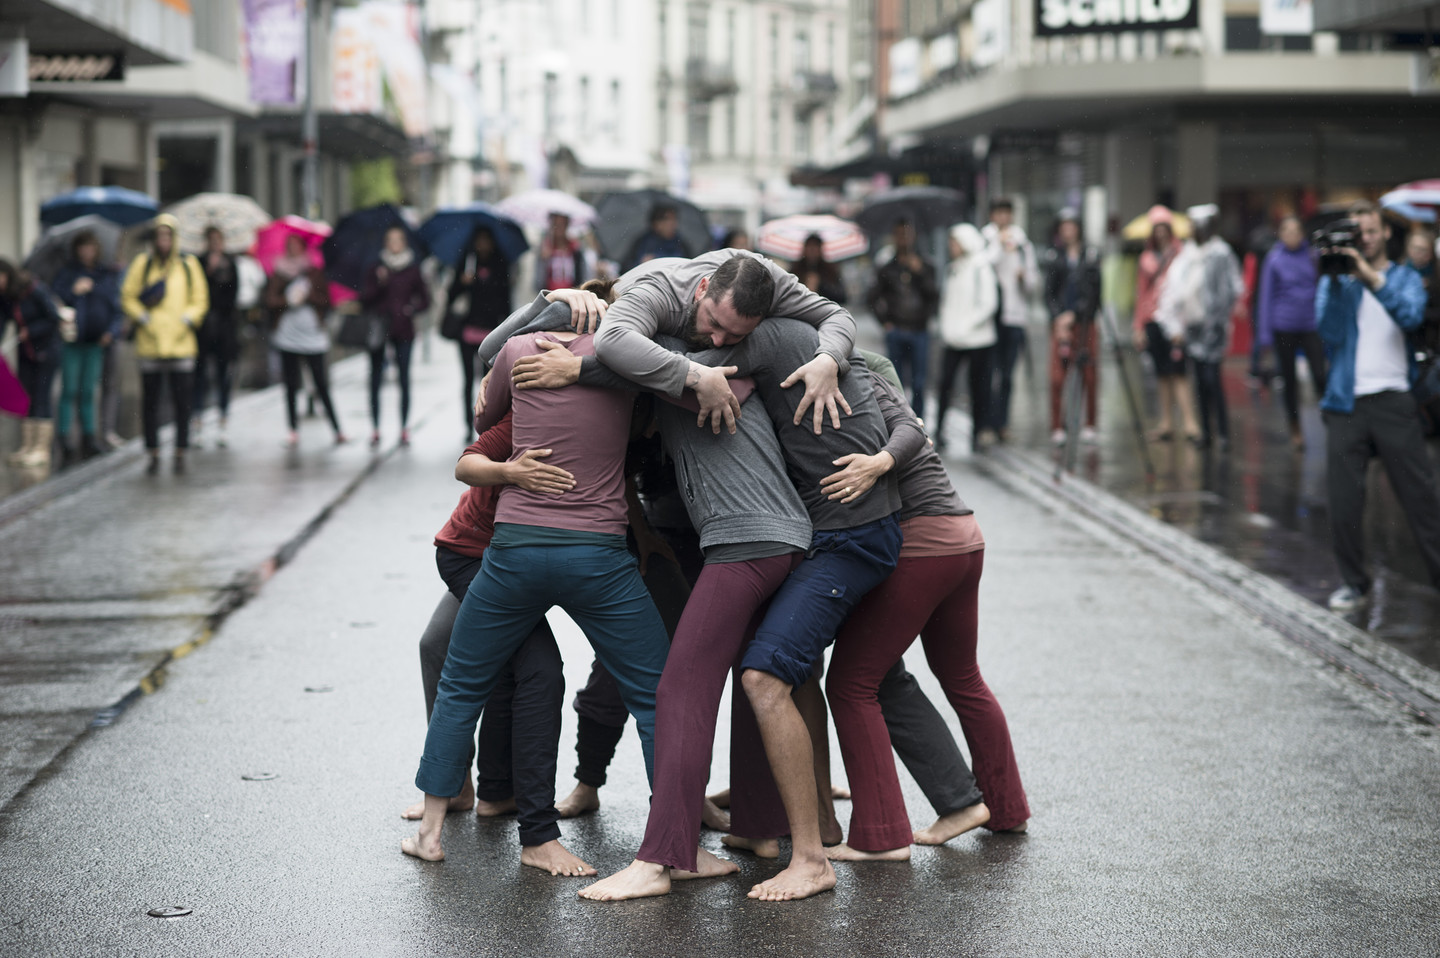 Simone Forti, Huddle, 1961. Performed at Le Mouvement—Performing the City, Biel/Bienne, 2014.  Performance, 10 minutes. The Museum of Modern Art, New York.